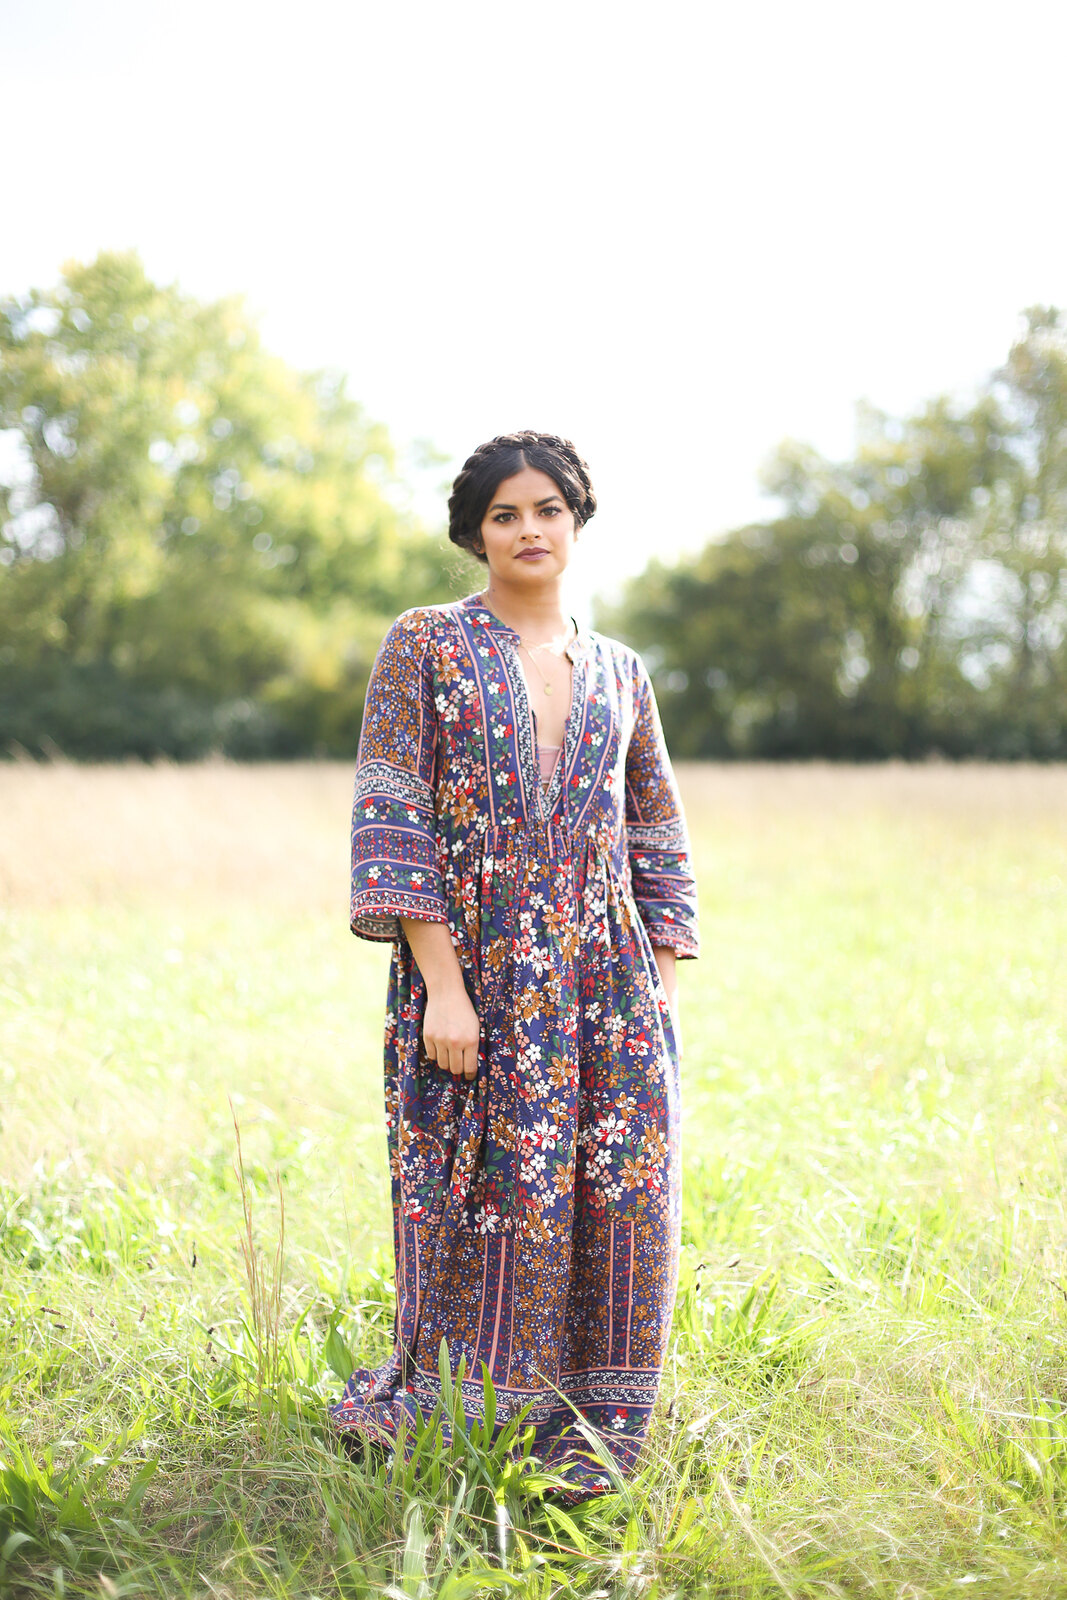 Priya the Blog, Nashville style blog, Nashville style blogger, Nashville fashion blog, Nashville fashion blogger, Vinnie Louise Nashville, ColourPop Lippie Stix in Lumiere, stackable necklaces, Fall outfit, how to wear a floral maxi dress, Rag & Bone Harrow booties, Fall outfit with floral maxi dress